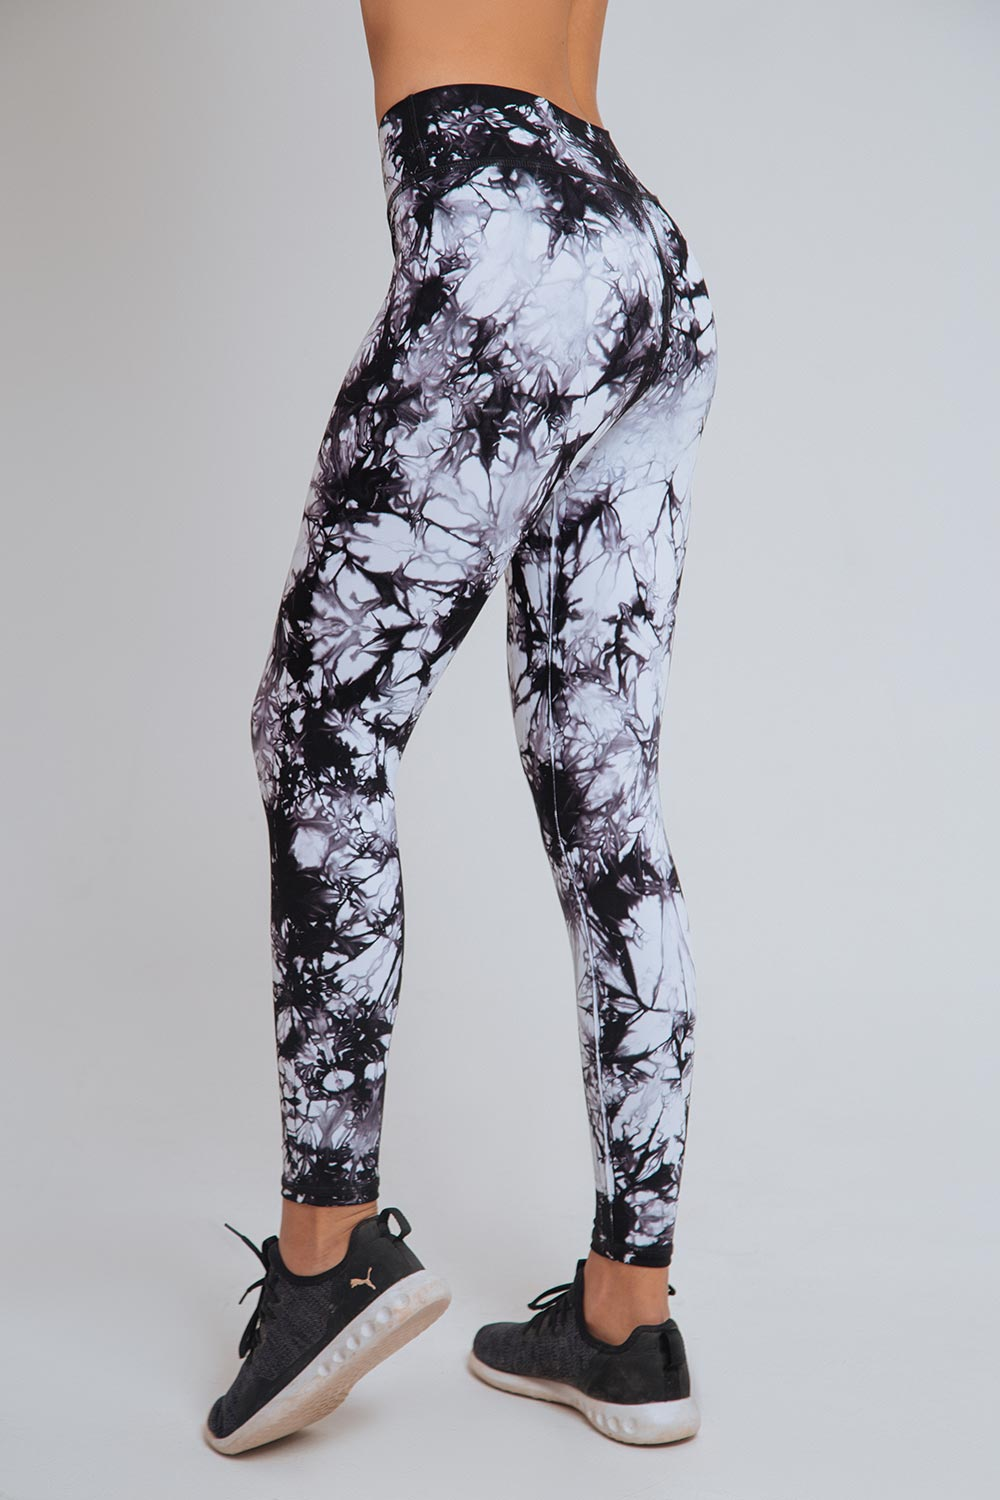 TIE DYE ESSENTIAL HIGH WAIST LEGGING